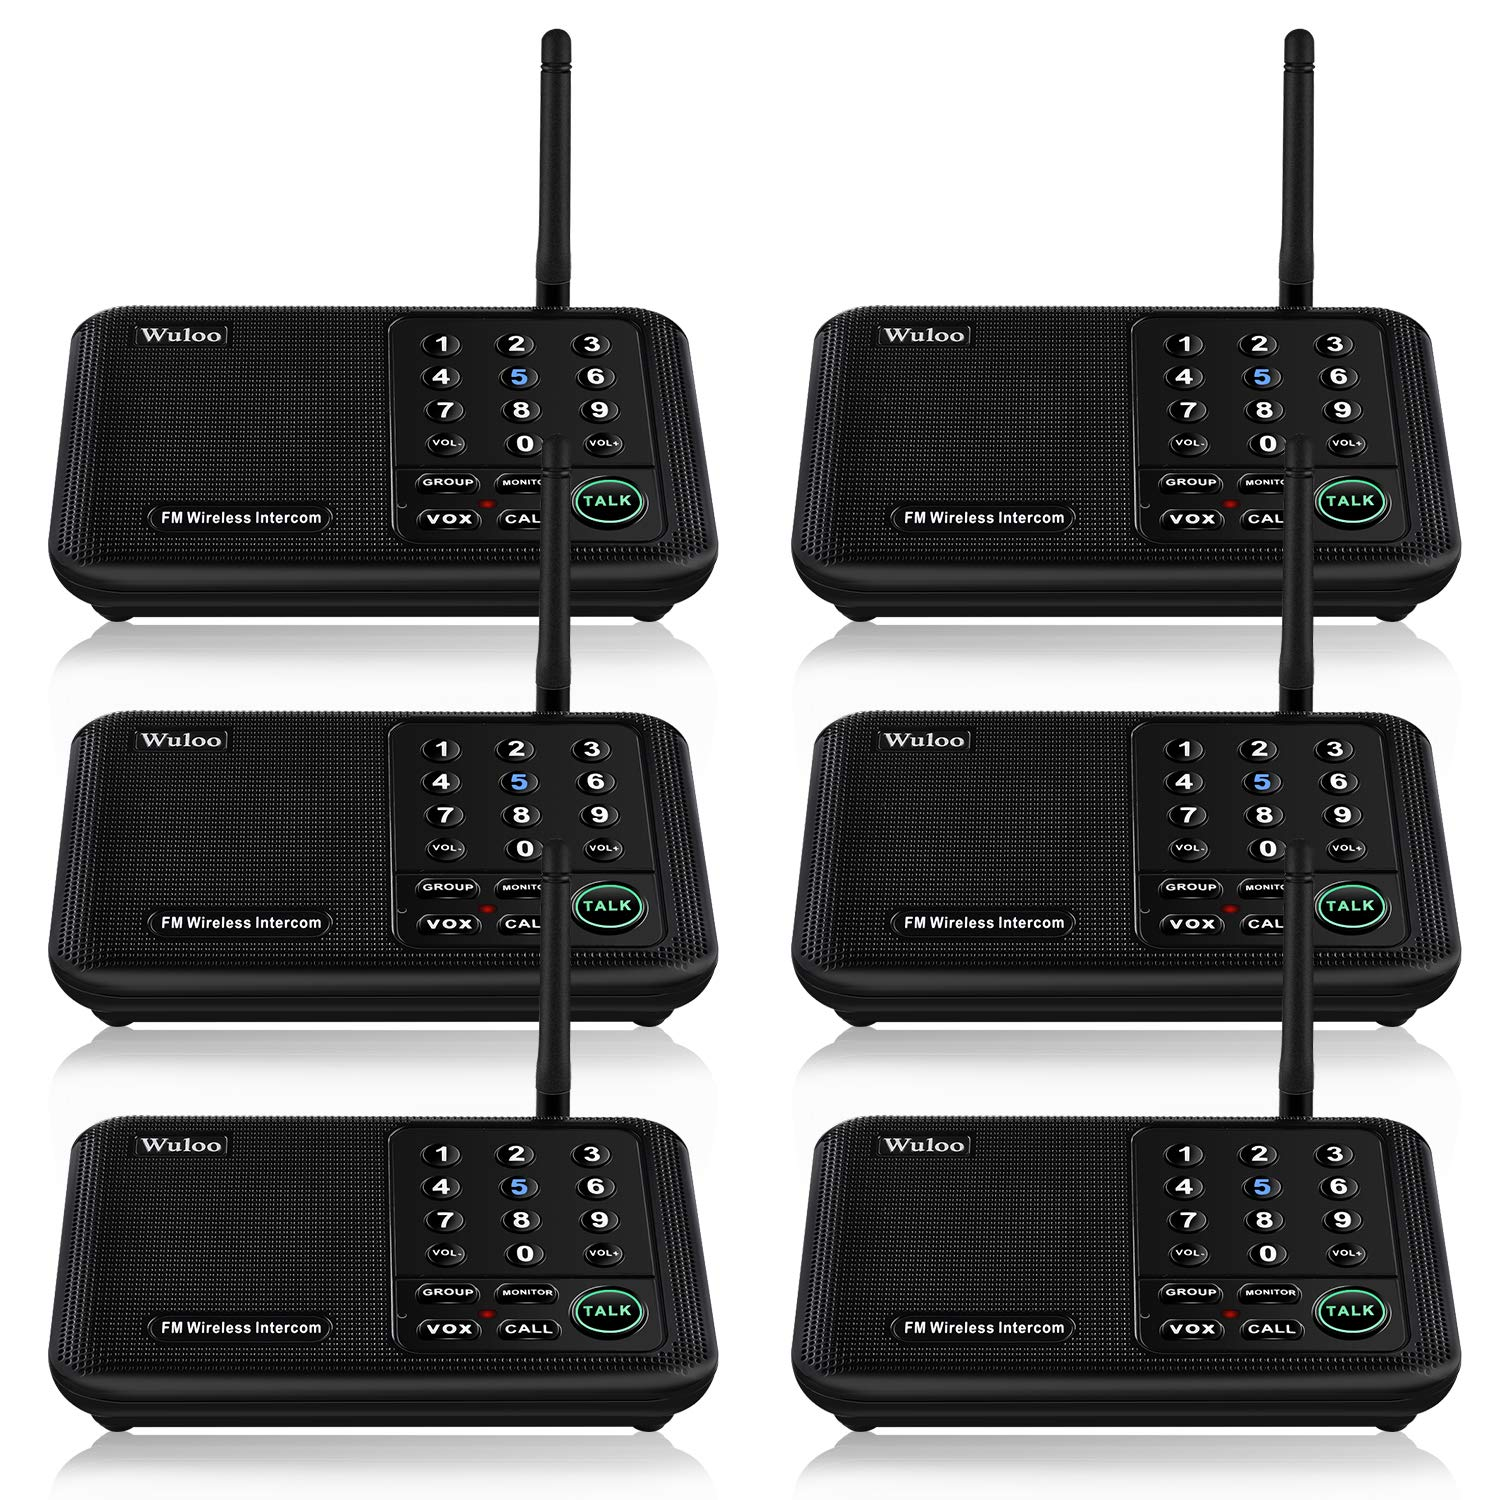 Wuloo Intercoms Wireless for Home 5280 Feet Range 10 Channel 3 Code, Wireless Intercom System for Home House Business Office, Room to Room Intercom, Home Communication System (6 Packs, Black)